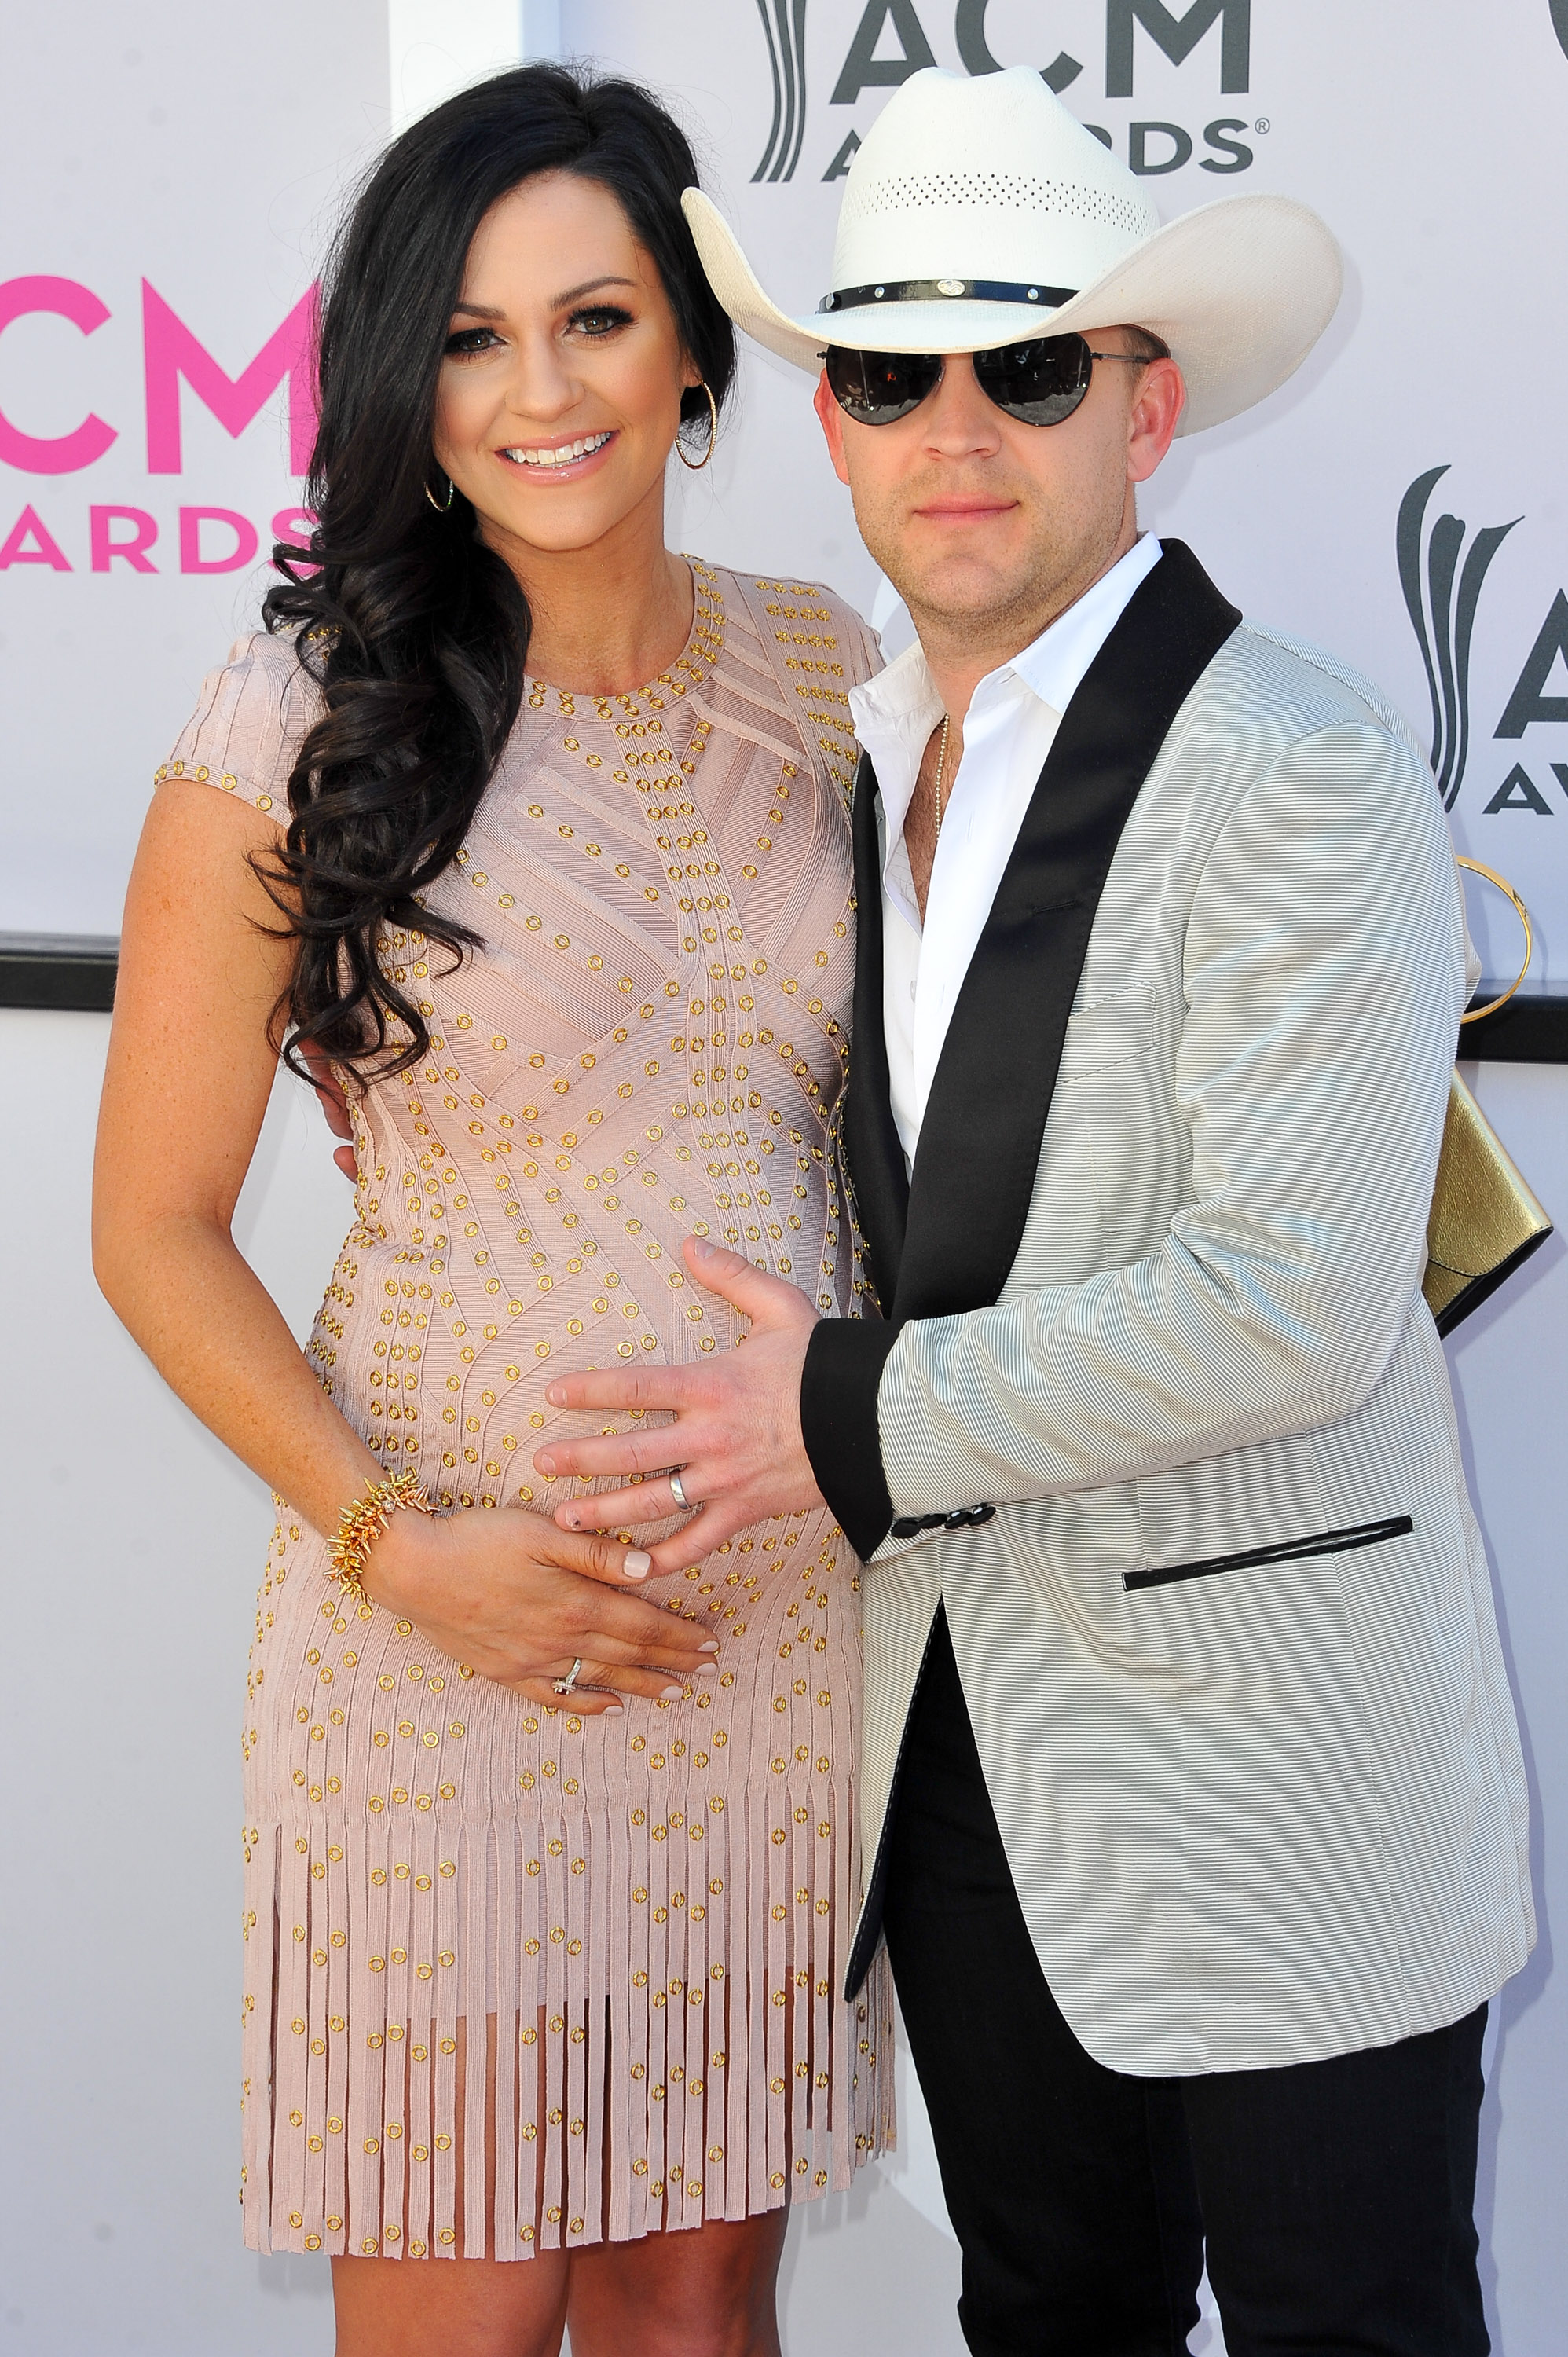 Justin Moore and Kate Moore; Photo by Allen Berezovsky/WireImage for Fashion Media